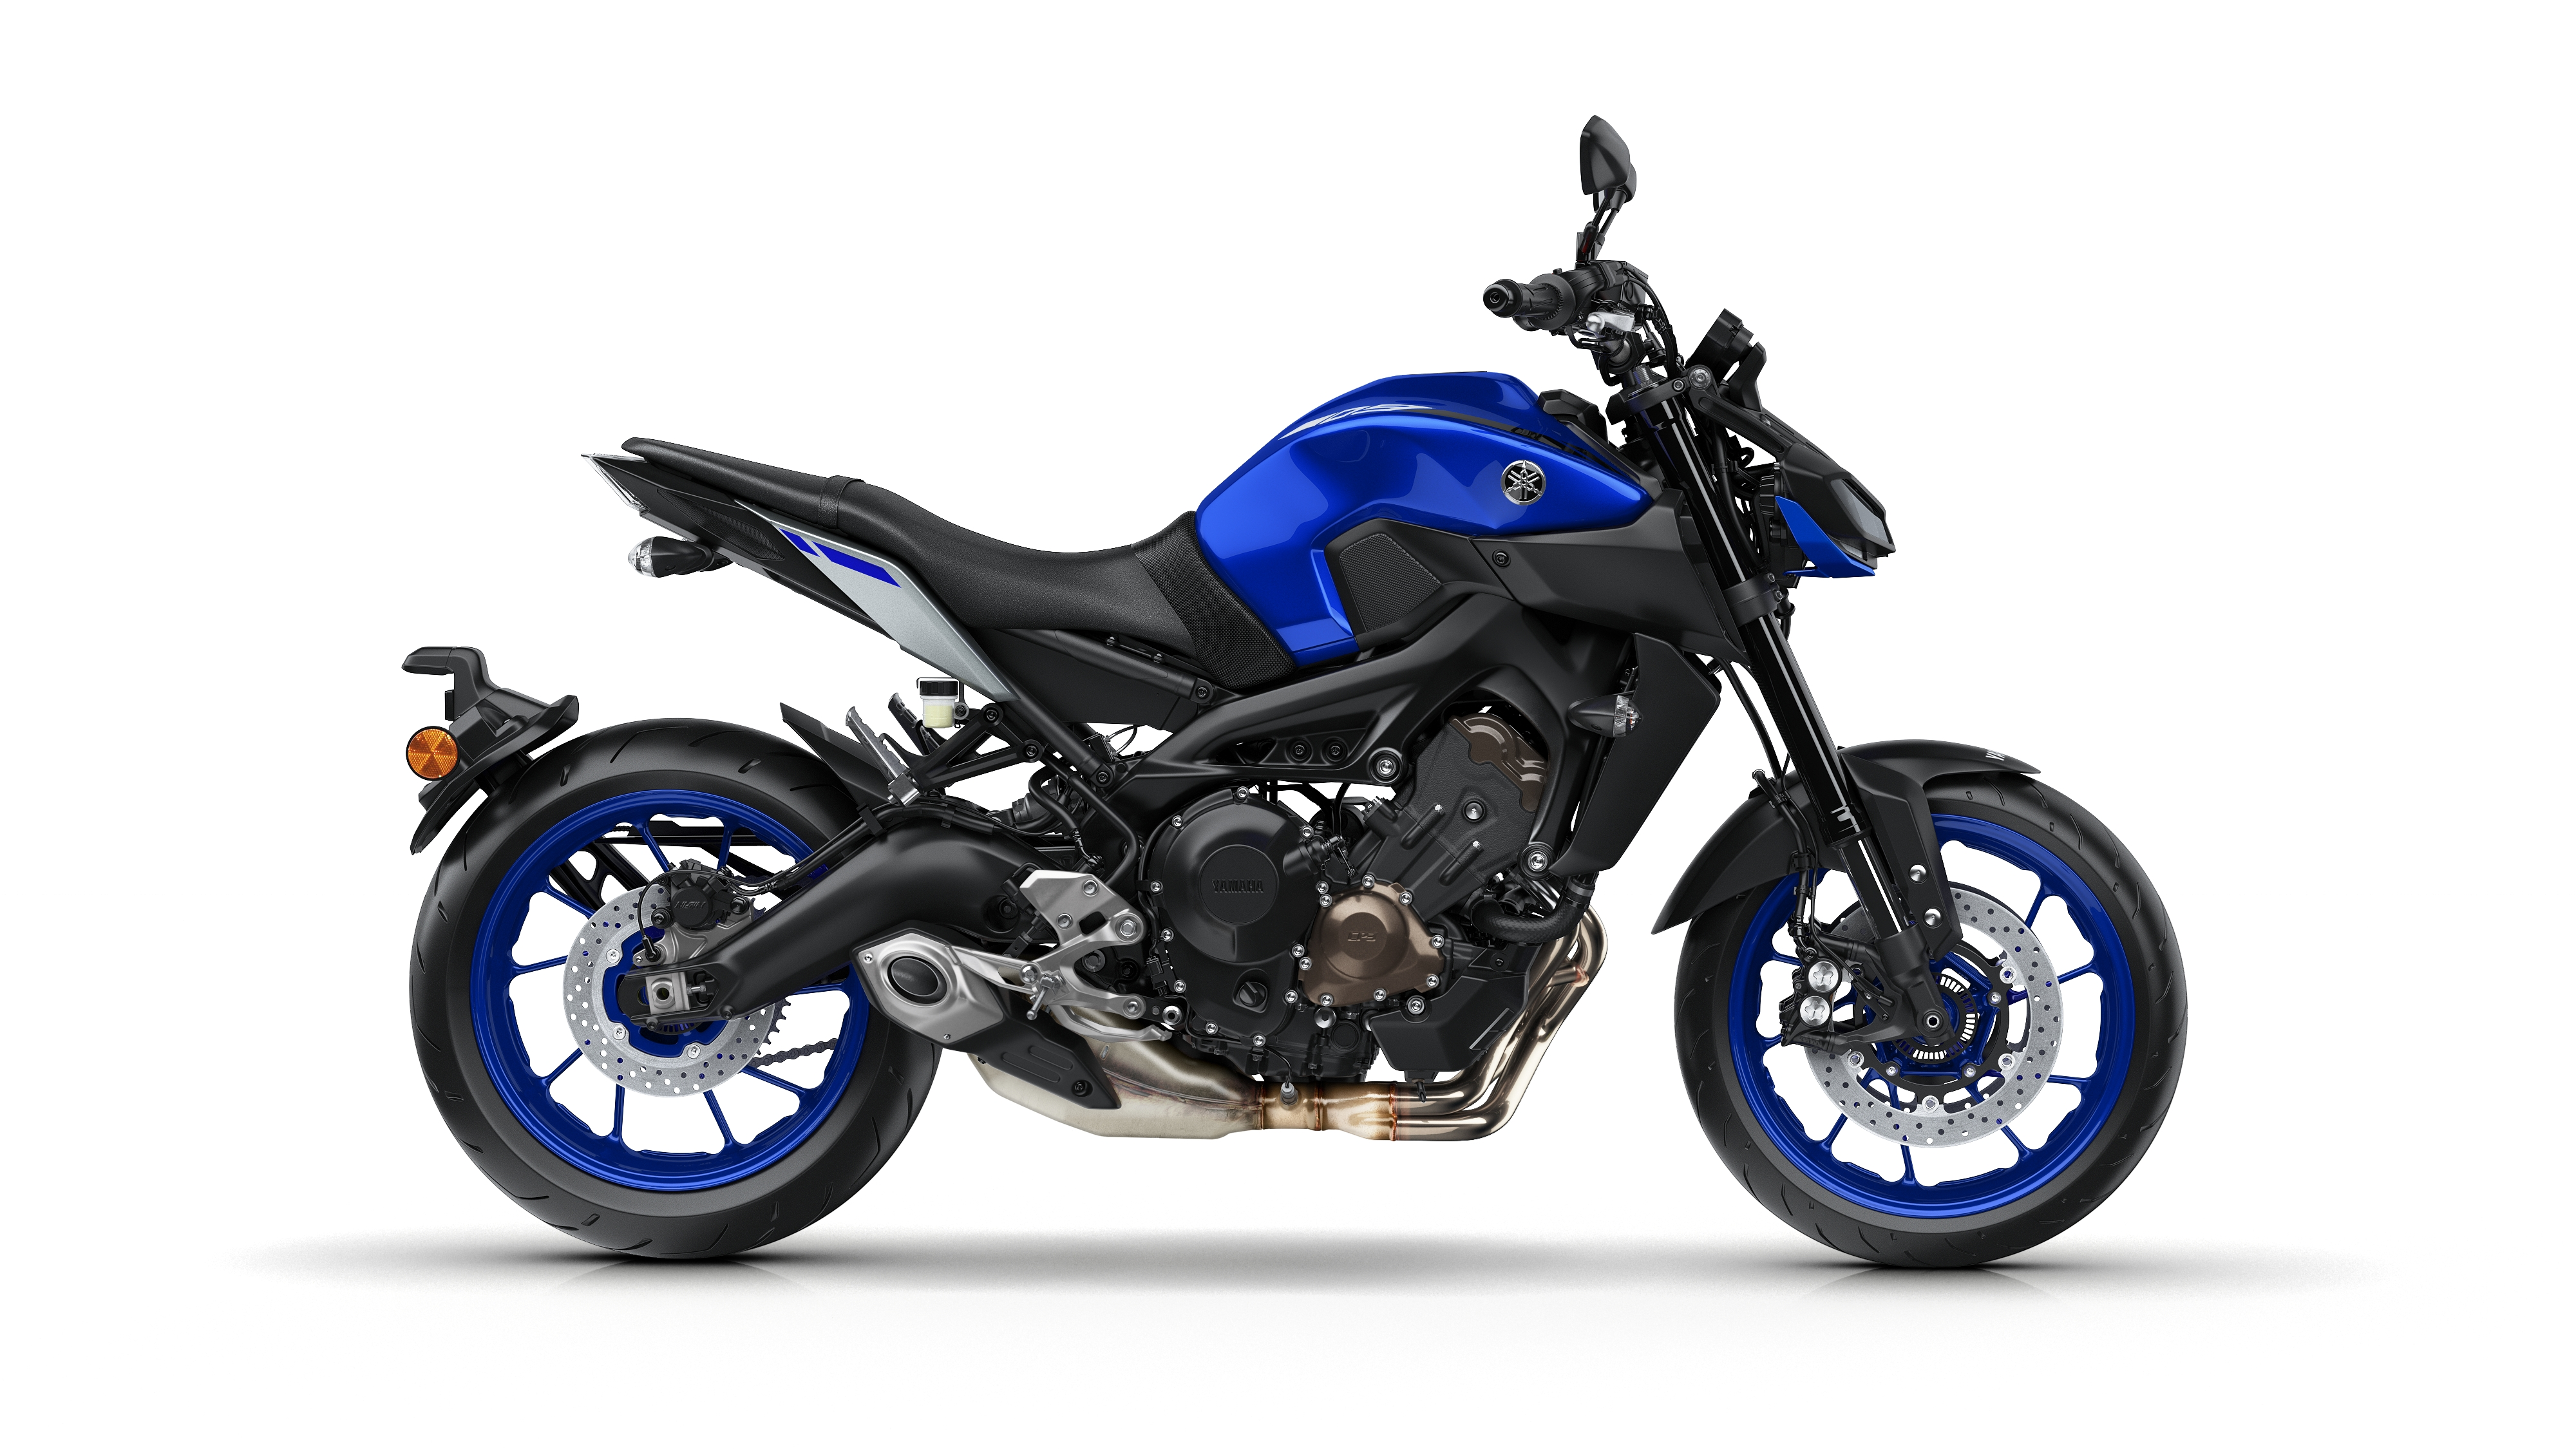 yamaha mt 09 gets mt 10 makeover and upg visordown